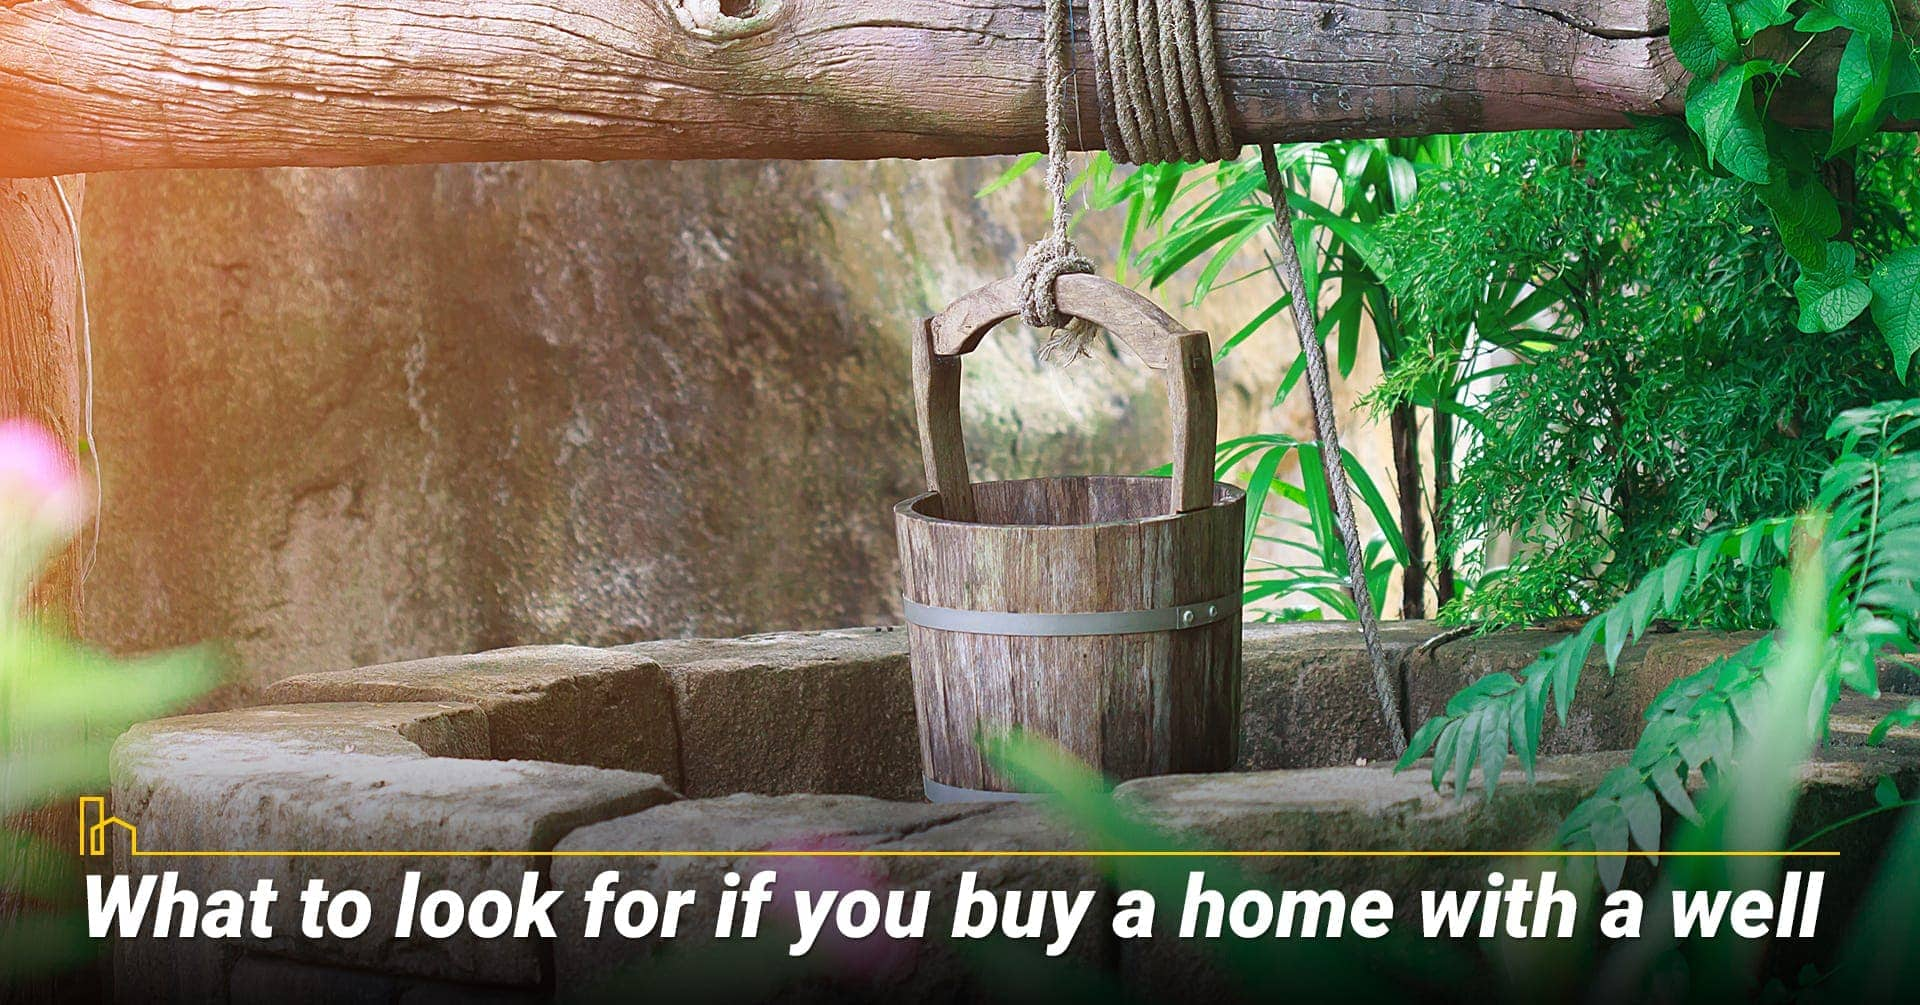 What to look for if you buy a home with a well, factors to consider if you buy a home with a well